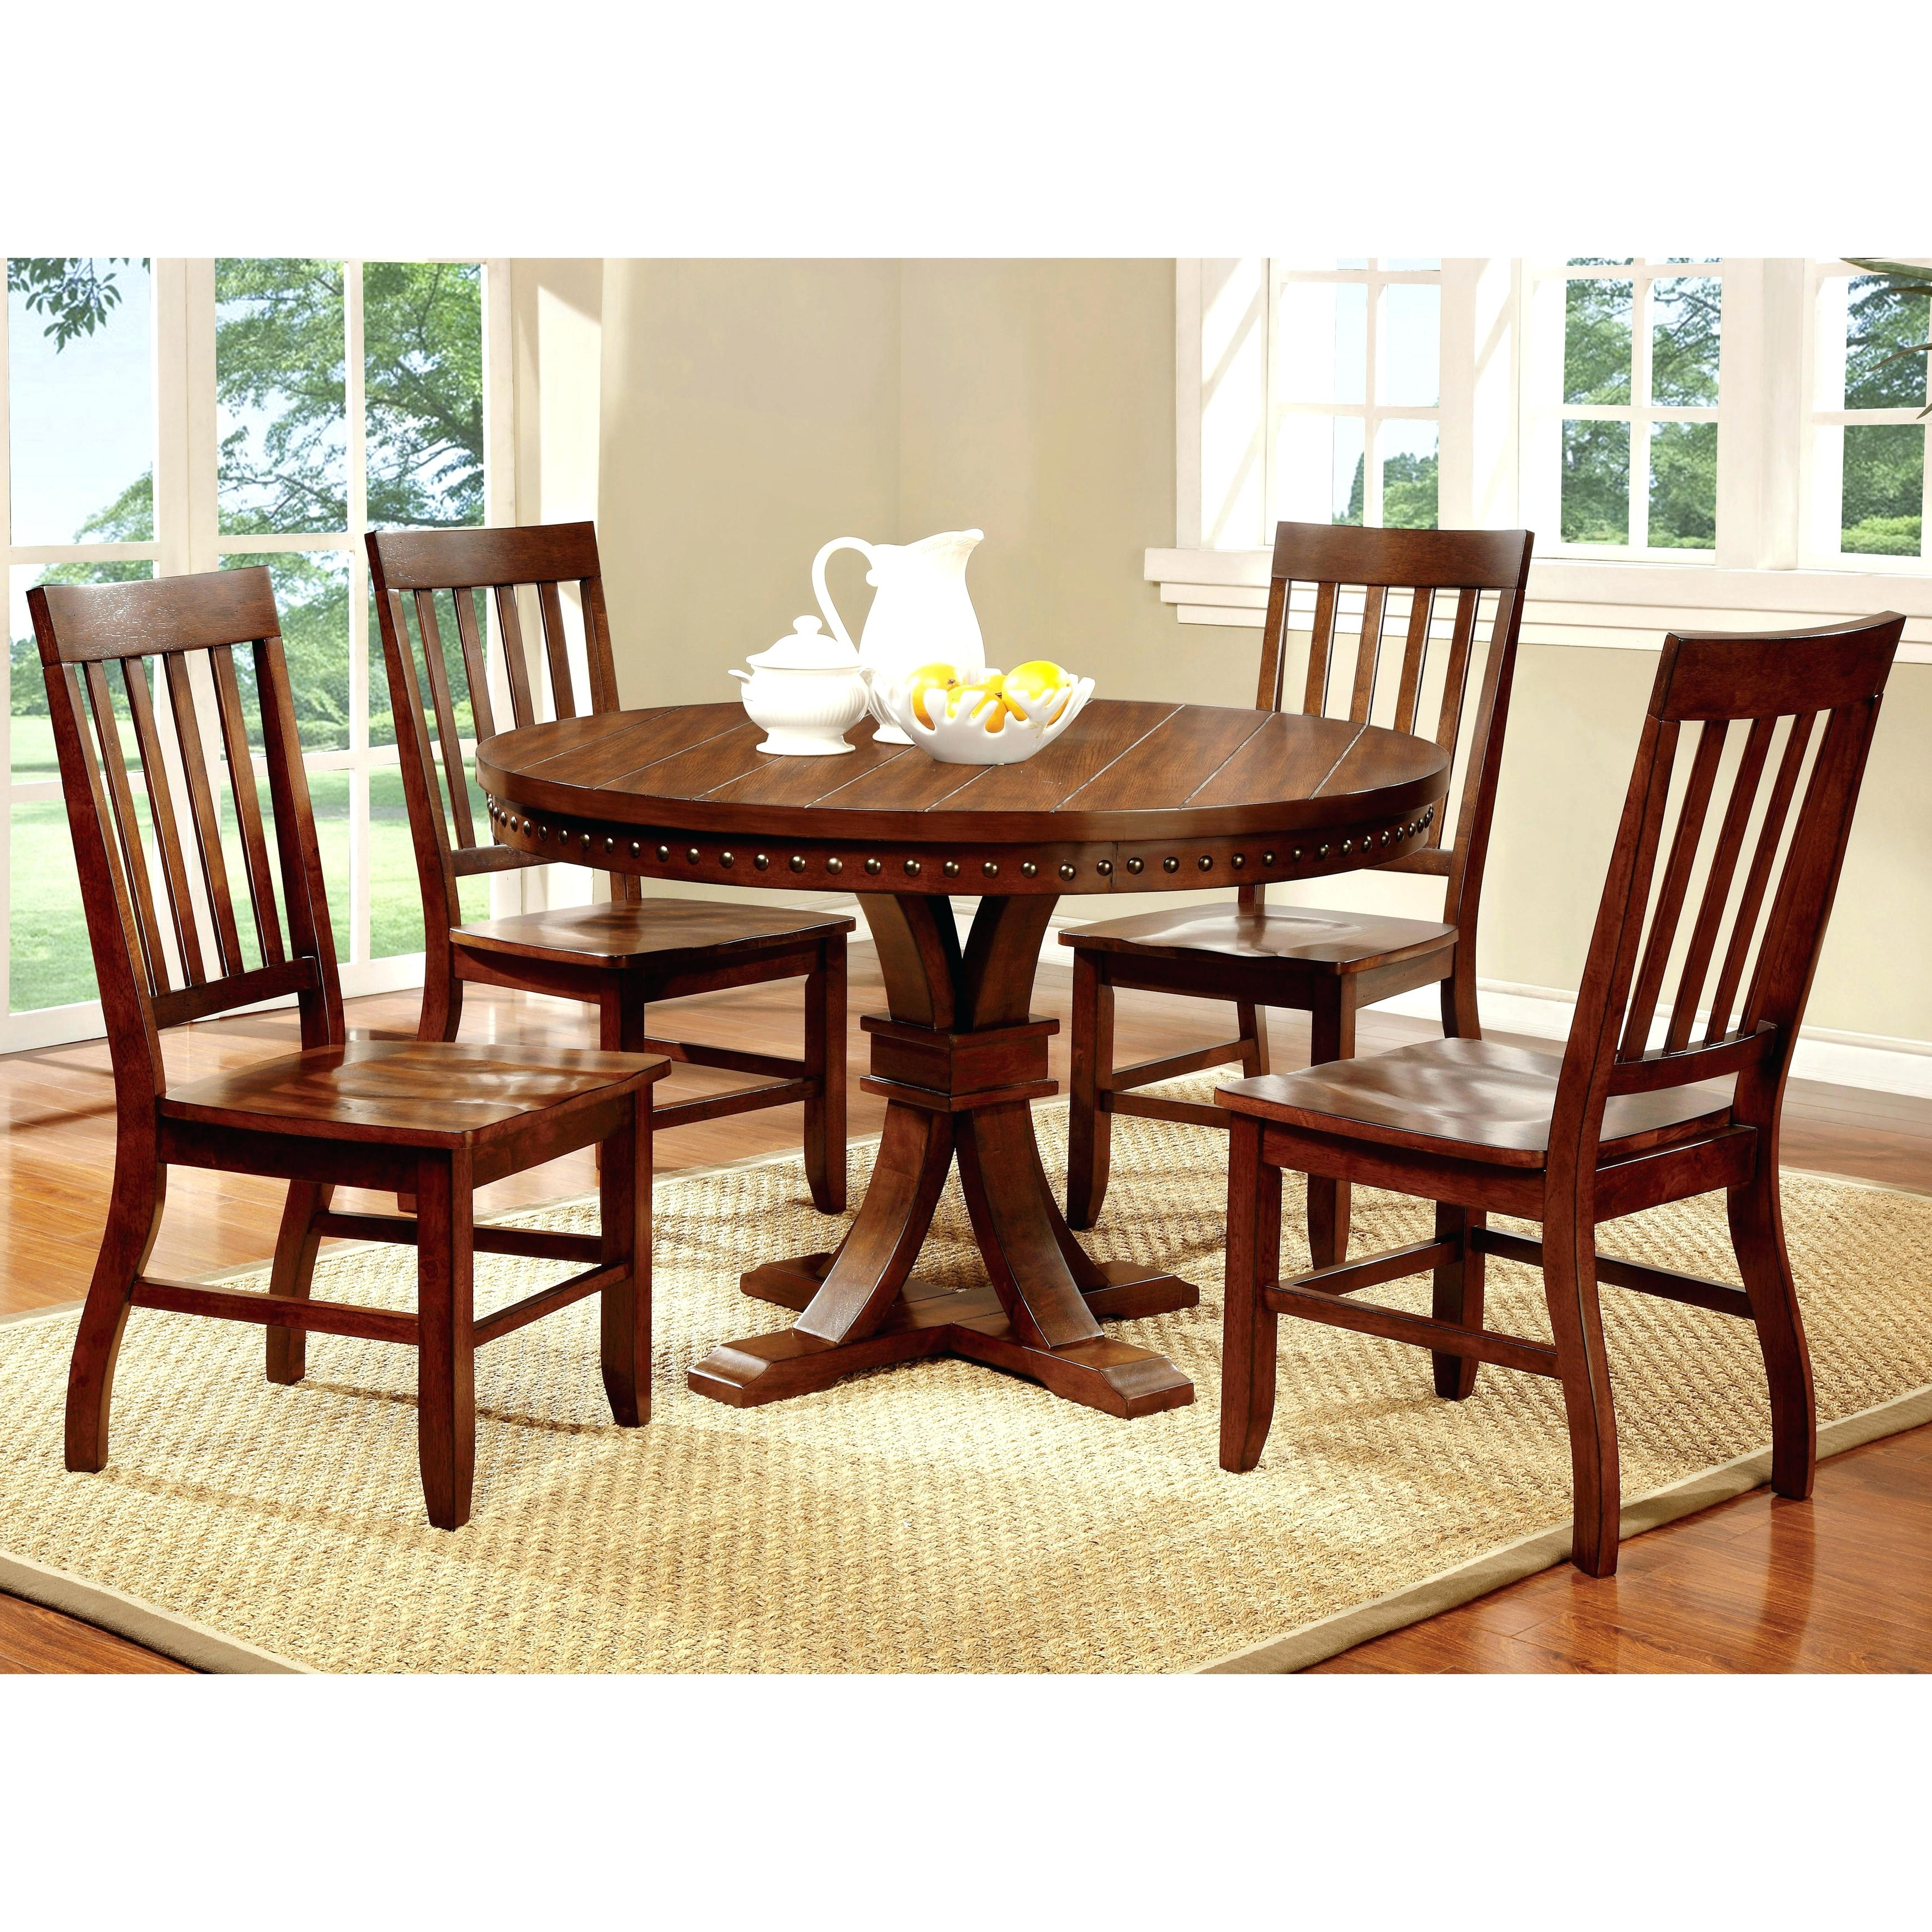 2018 Oak Table And Chairs Oak Dining Chairs Ebay – Sardin Throughout Dining Chairs Ebay (View 22 of 25)